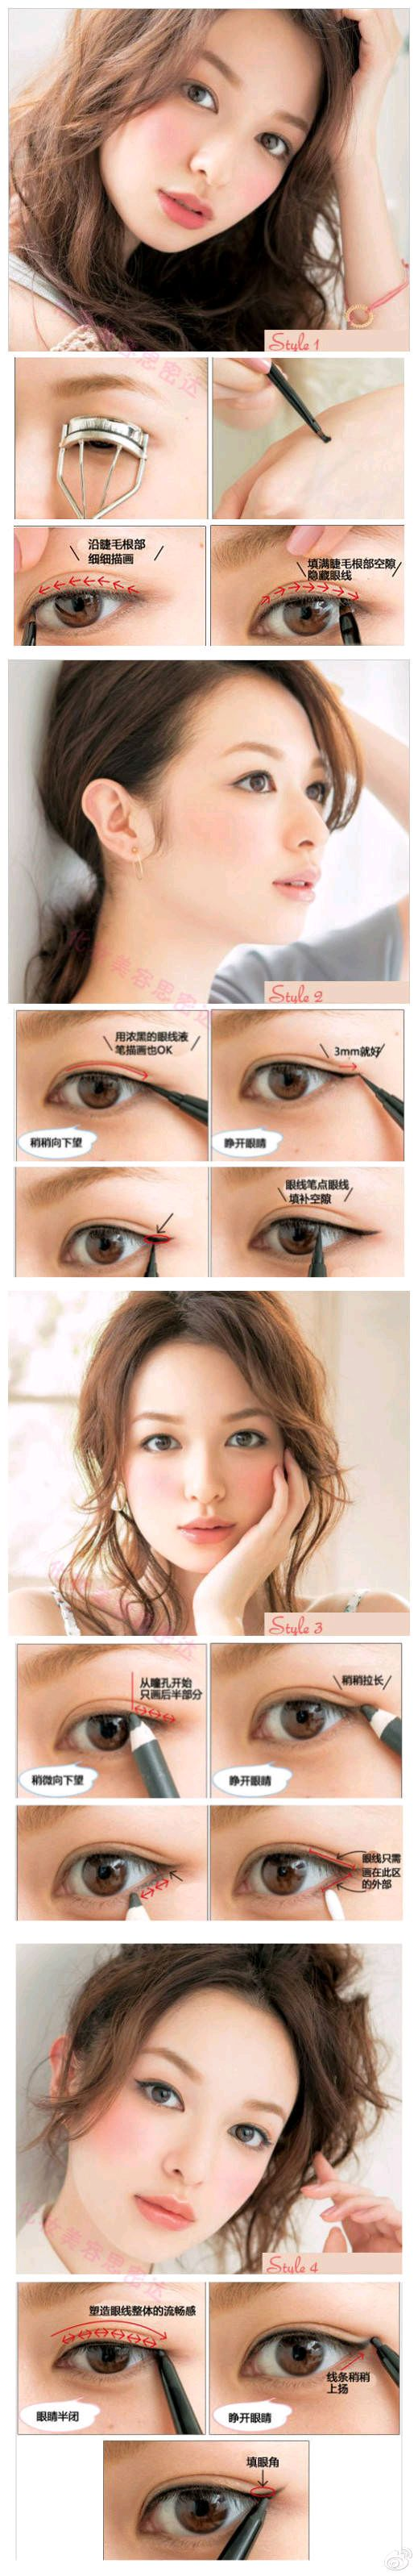 Different Japanese eye make up looks                                                                                                                                                                                 More